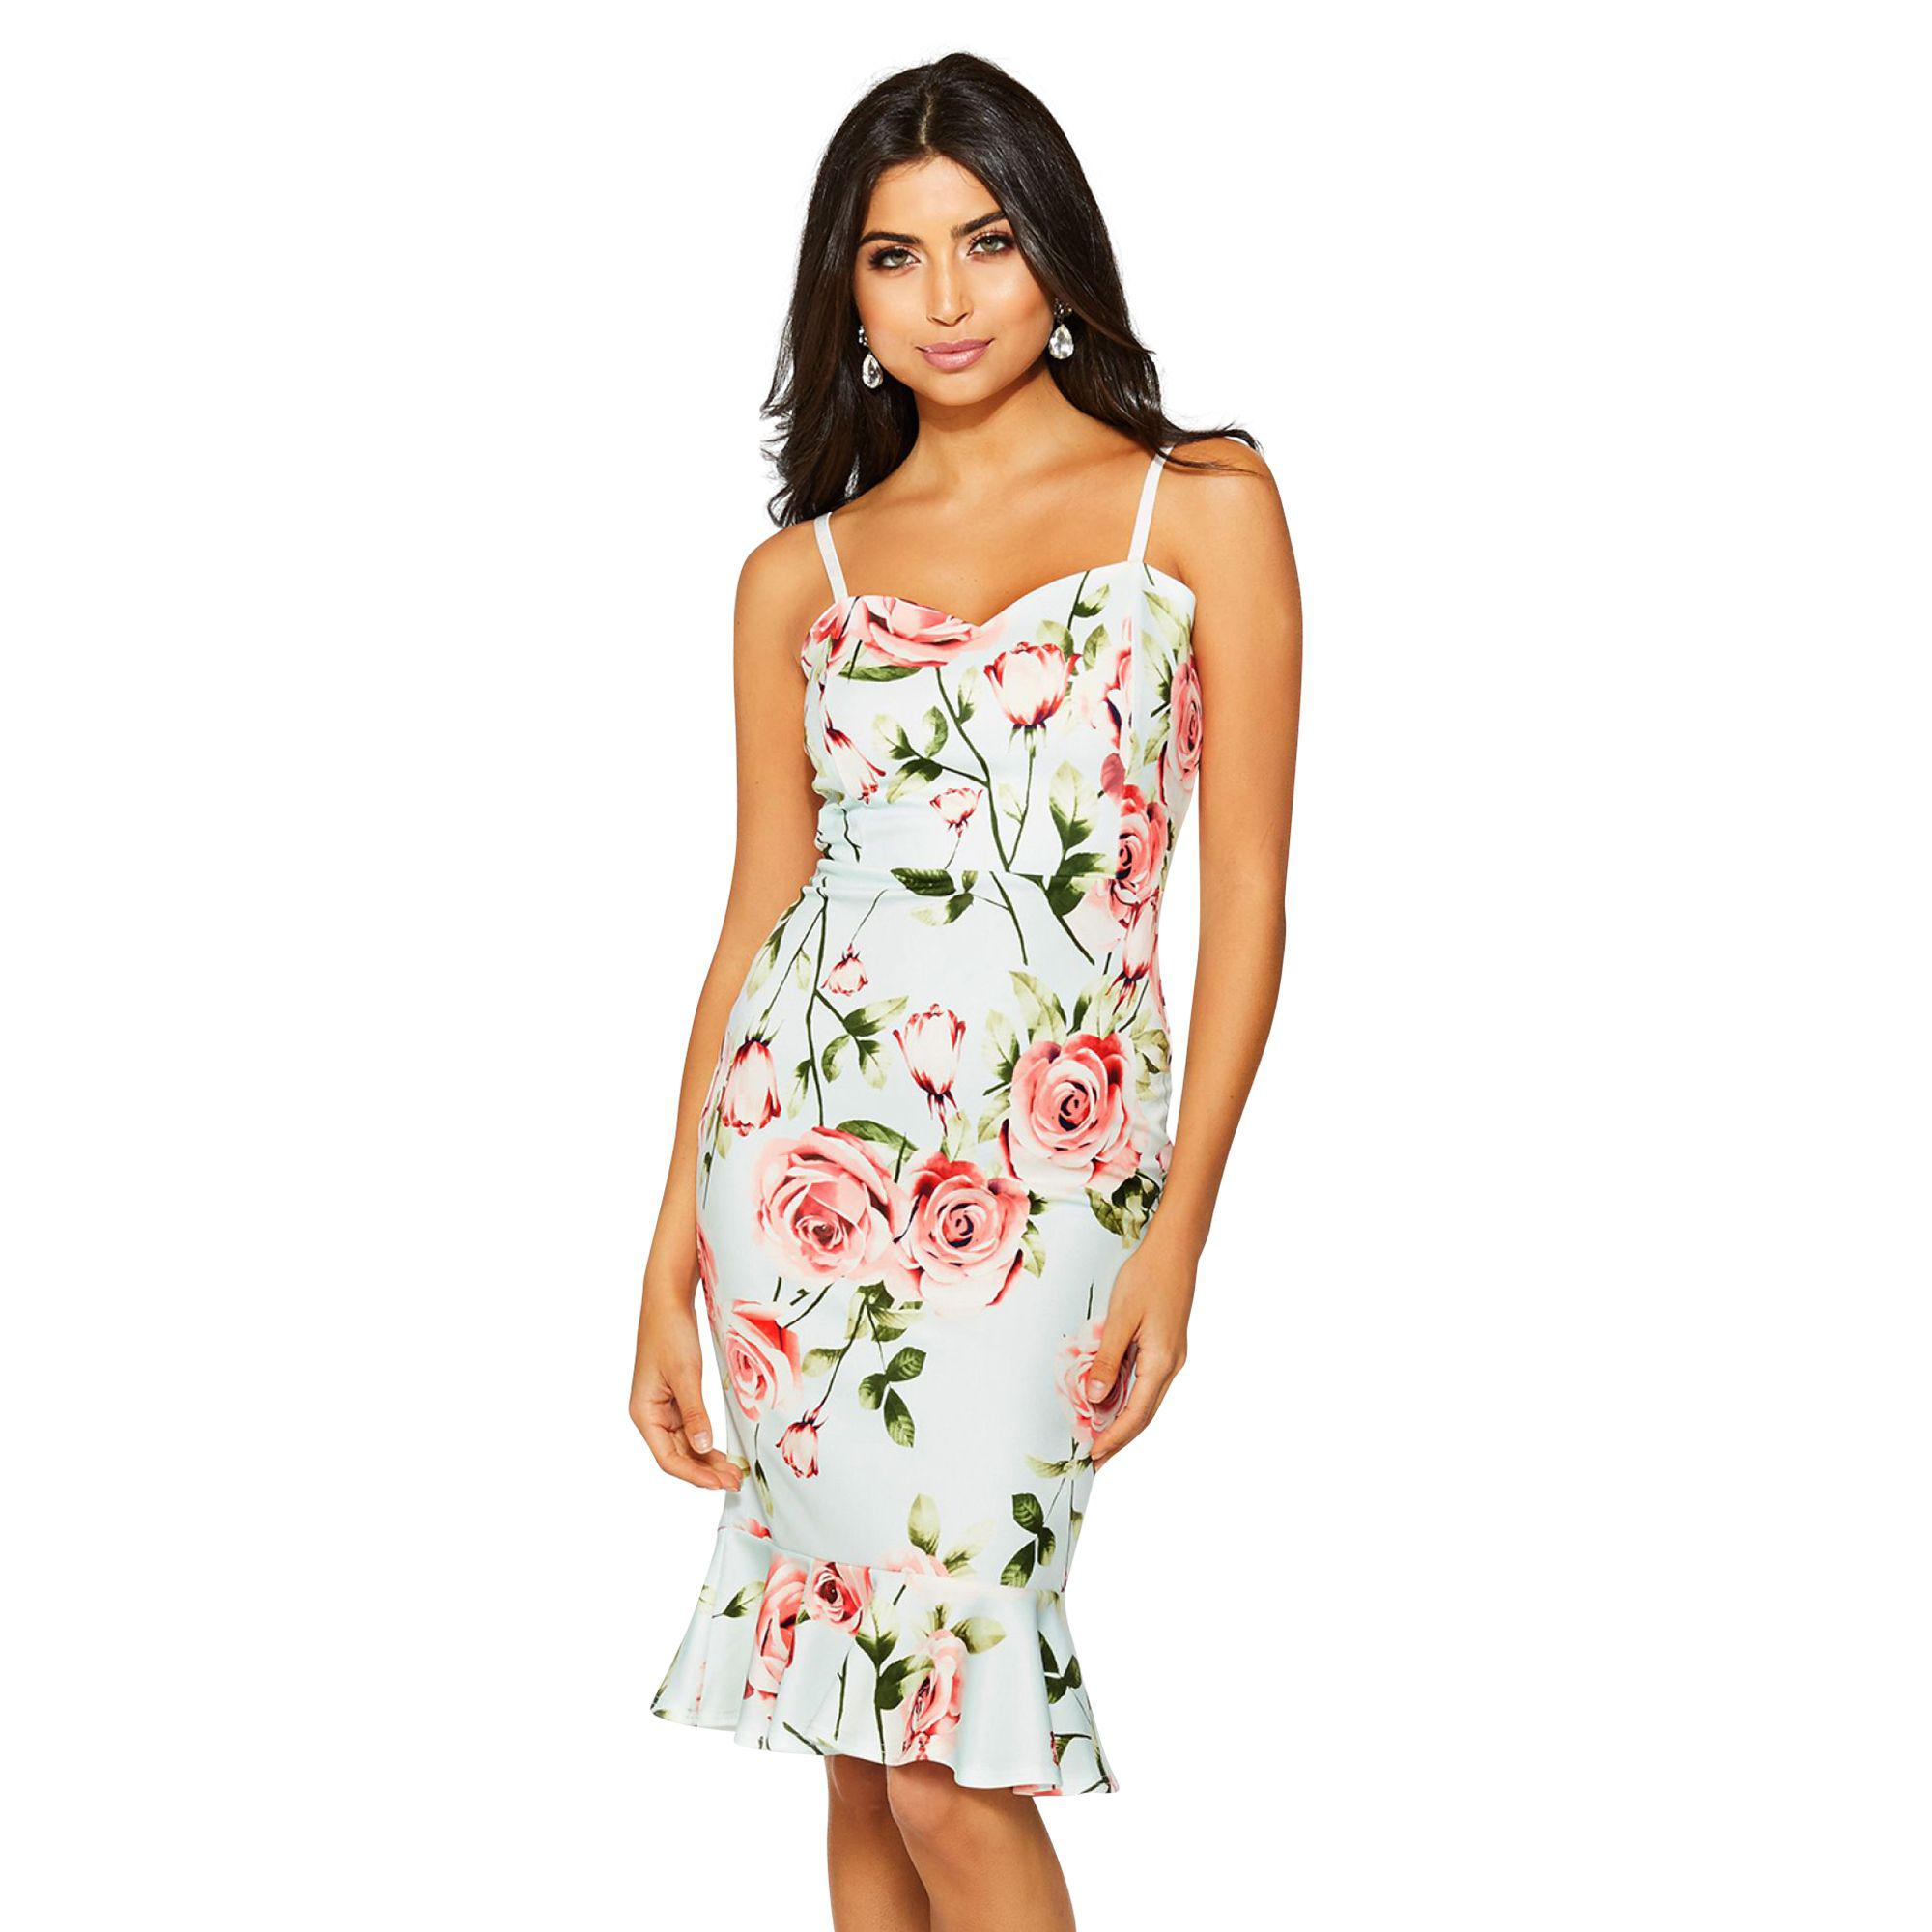 d72e85339248 Quiz Mint And Pink Floral Strap Midi Dress in Green - Lyst